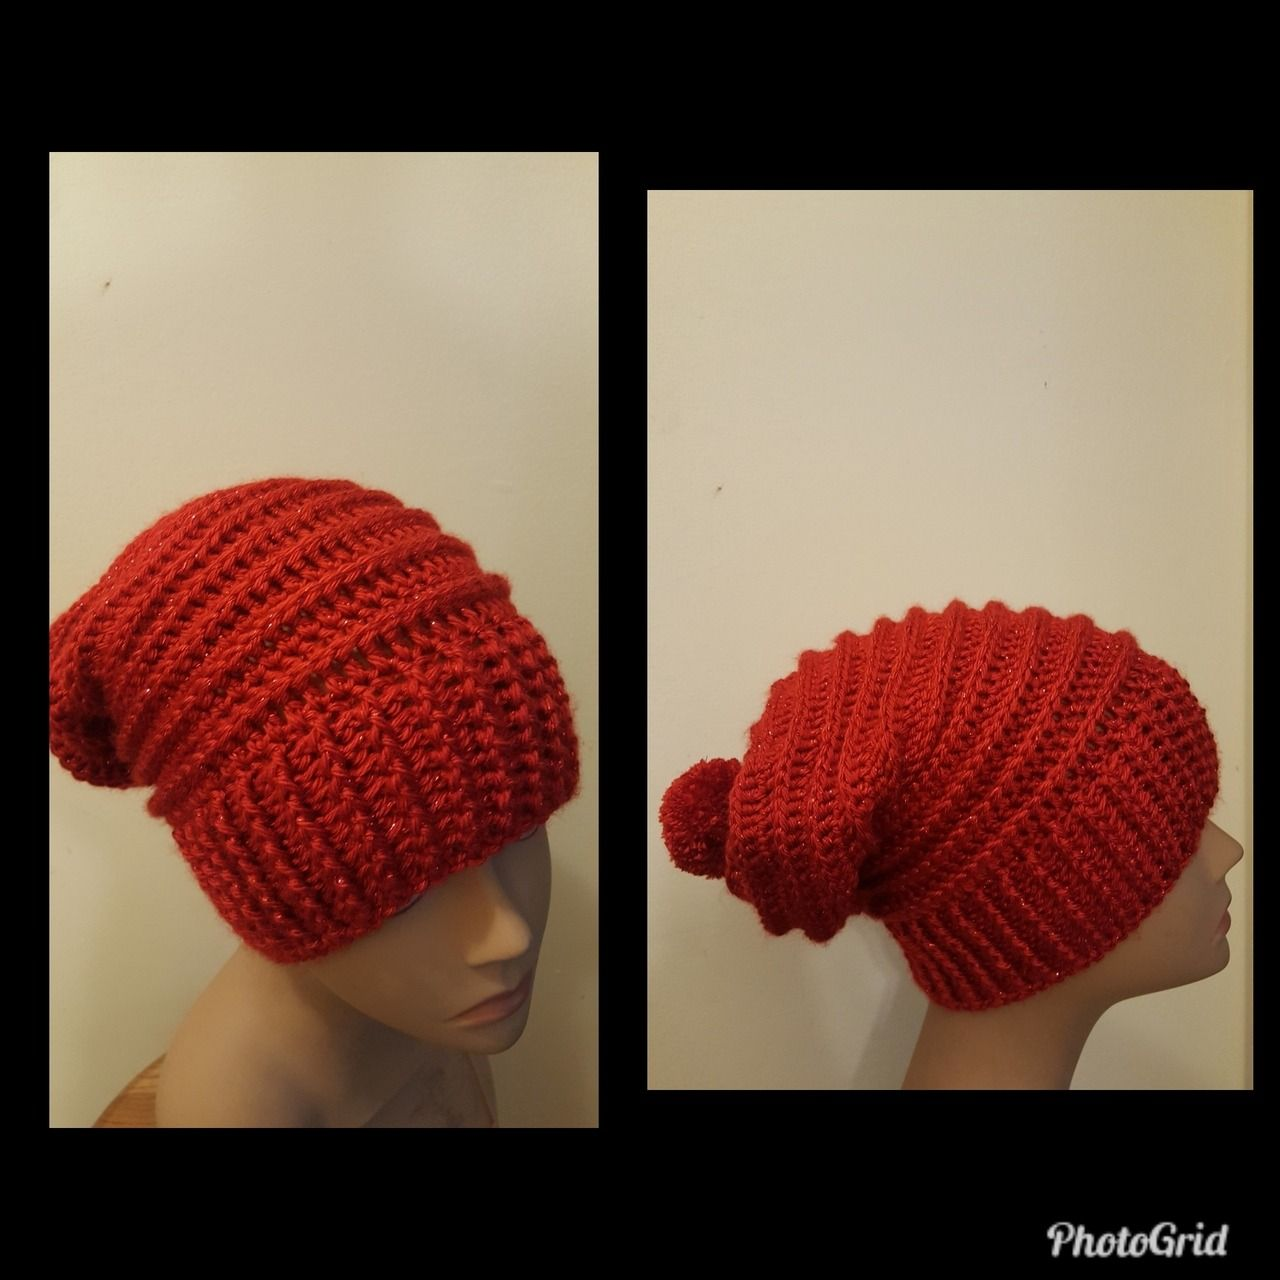 a5bac4b3d51 Crocheted Red Sparkle Riptide Slouch Hat!(For Sale) 13- jbwii.tumblr ...